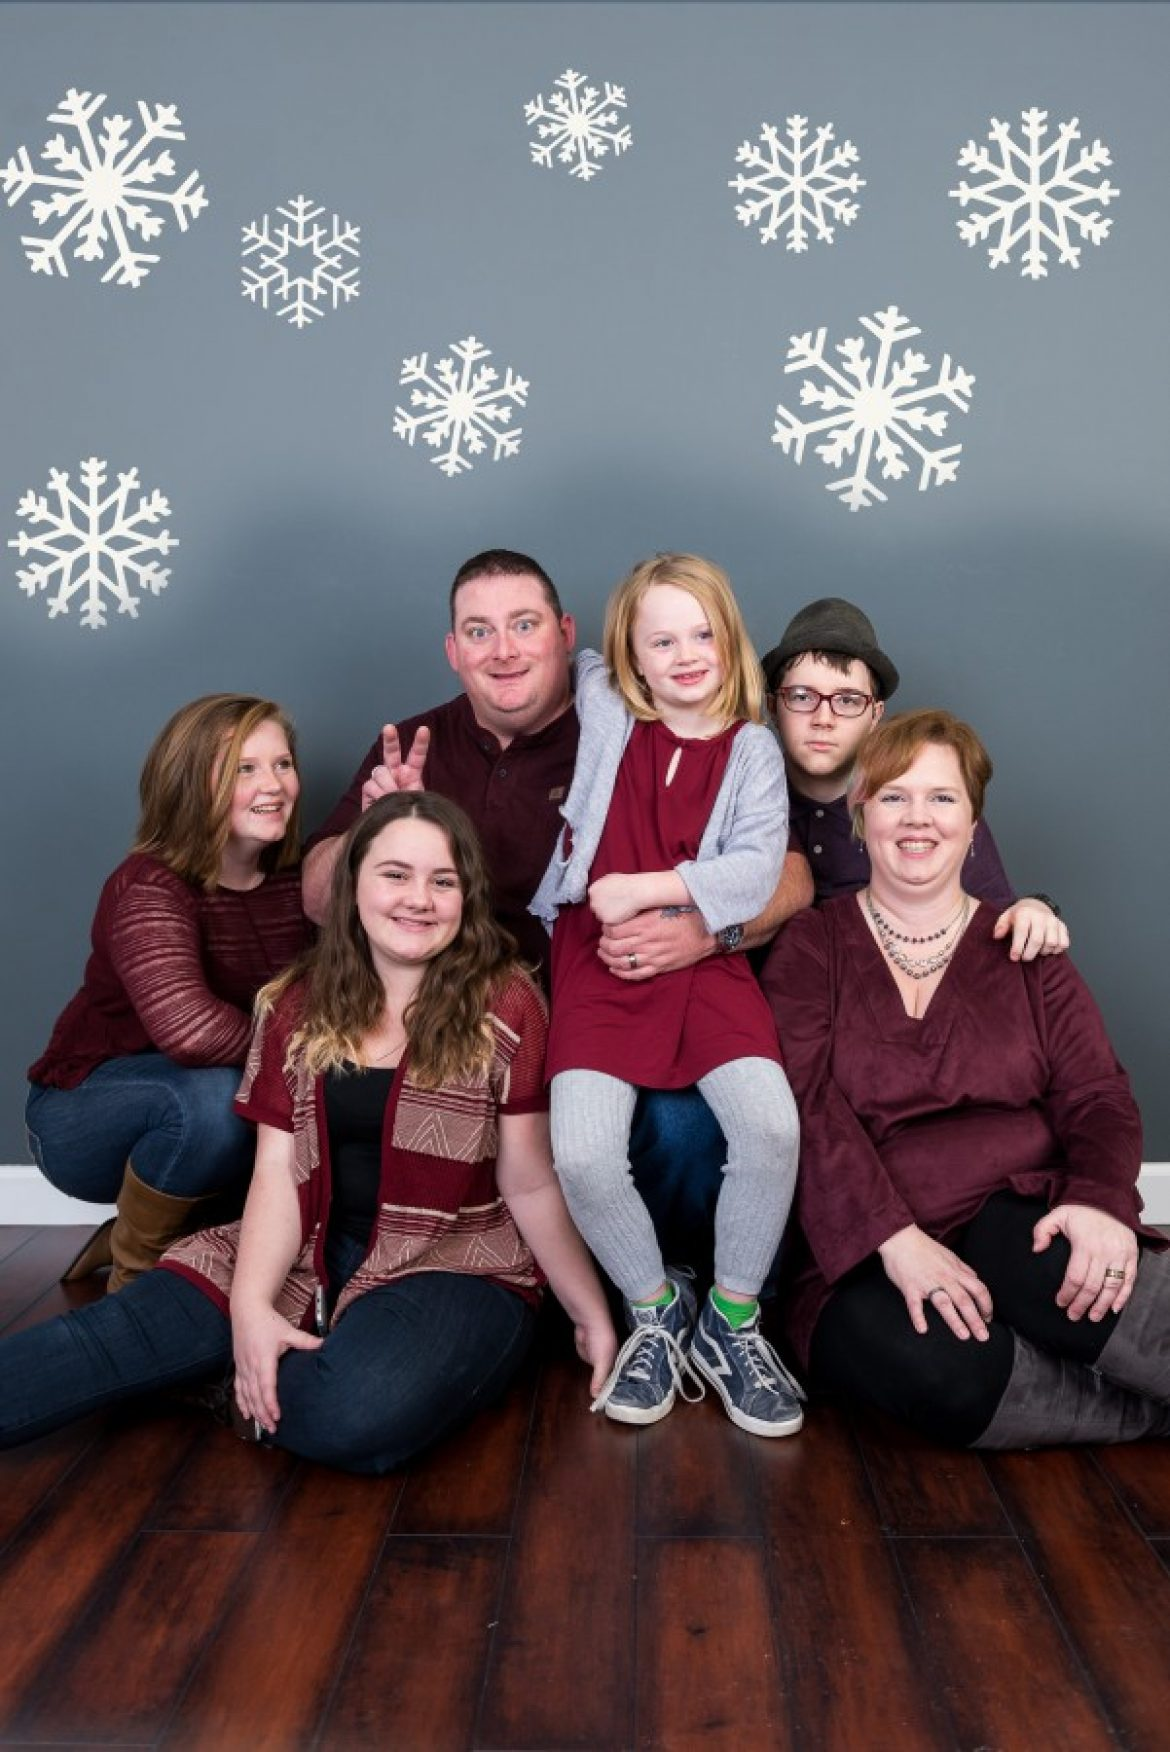 Christmas Mini Sessions Satterfield, Applegarth, and Hansel Families | Lincoln Nebraska Family Photography